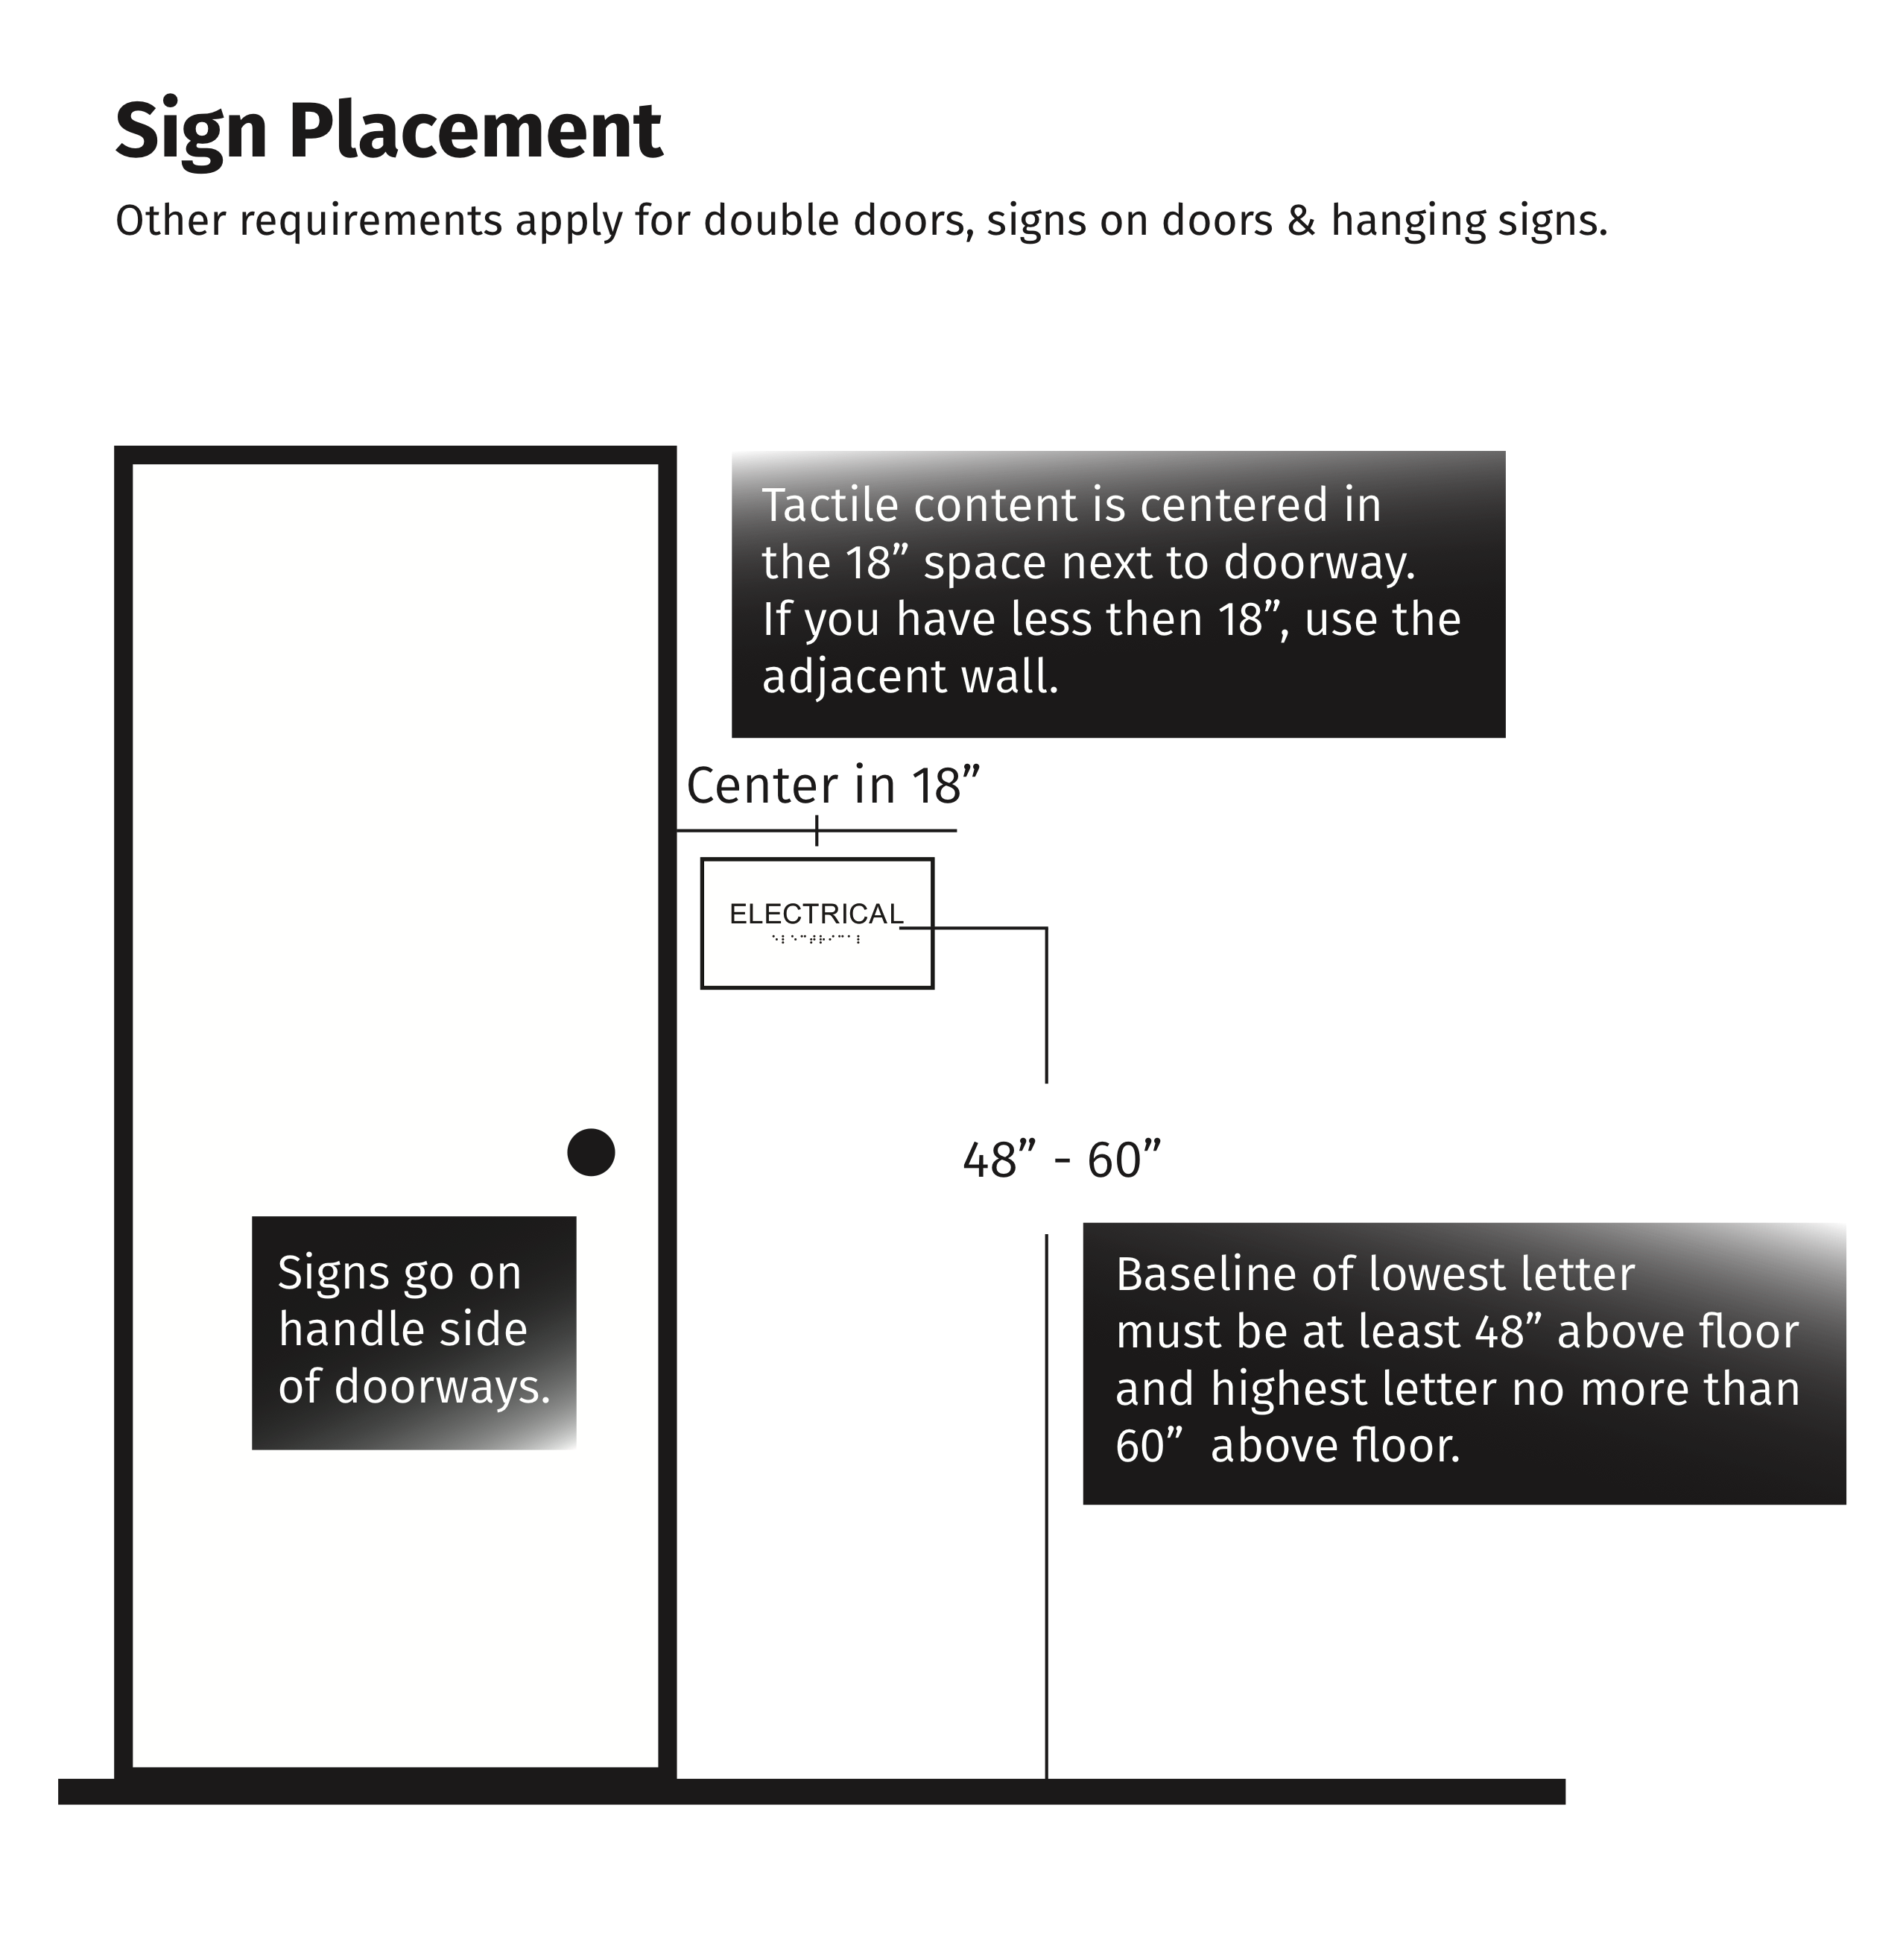 ADA sign installation requirements